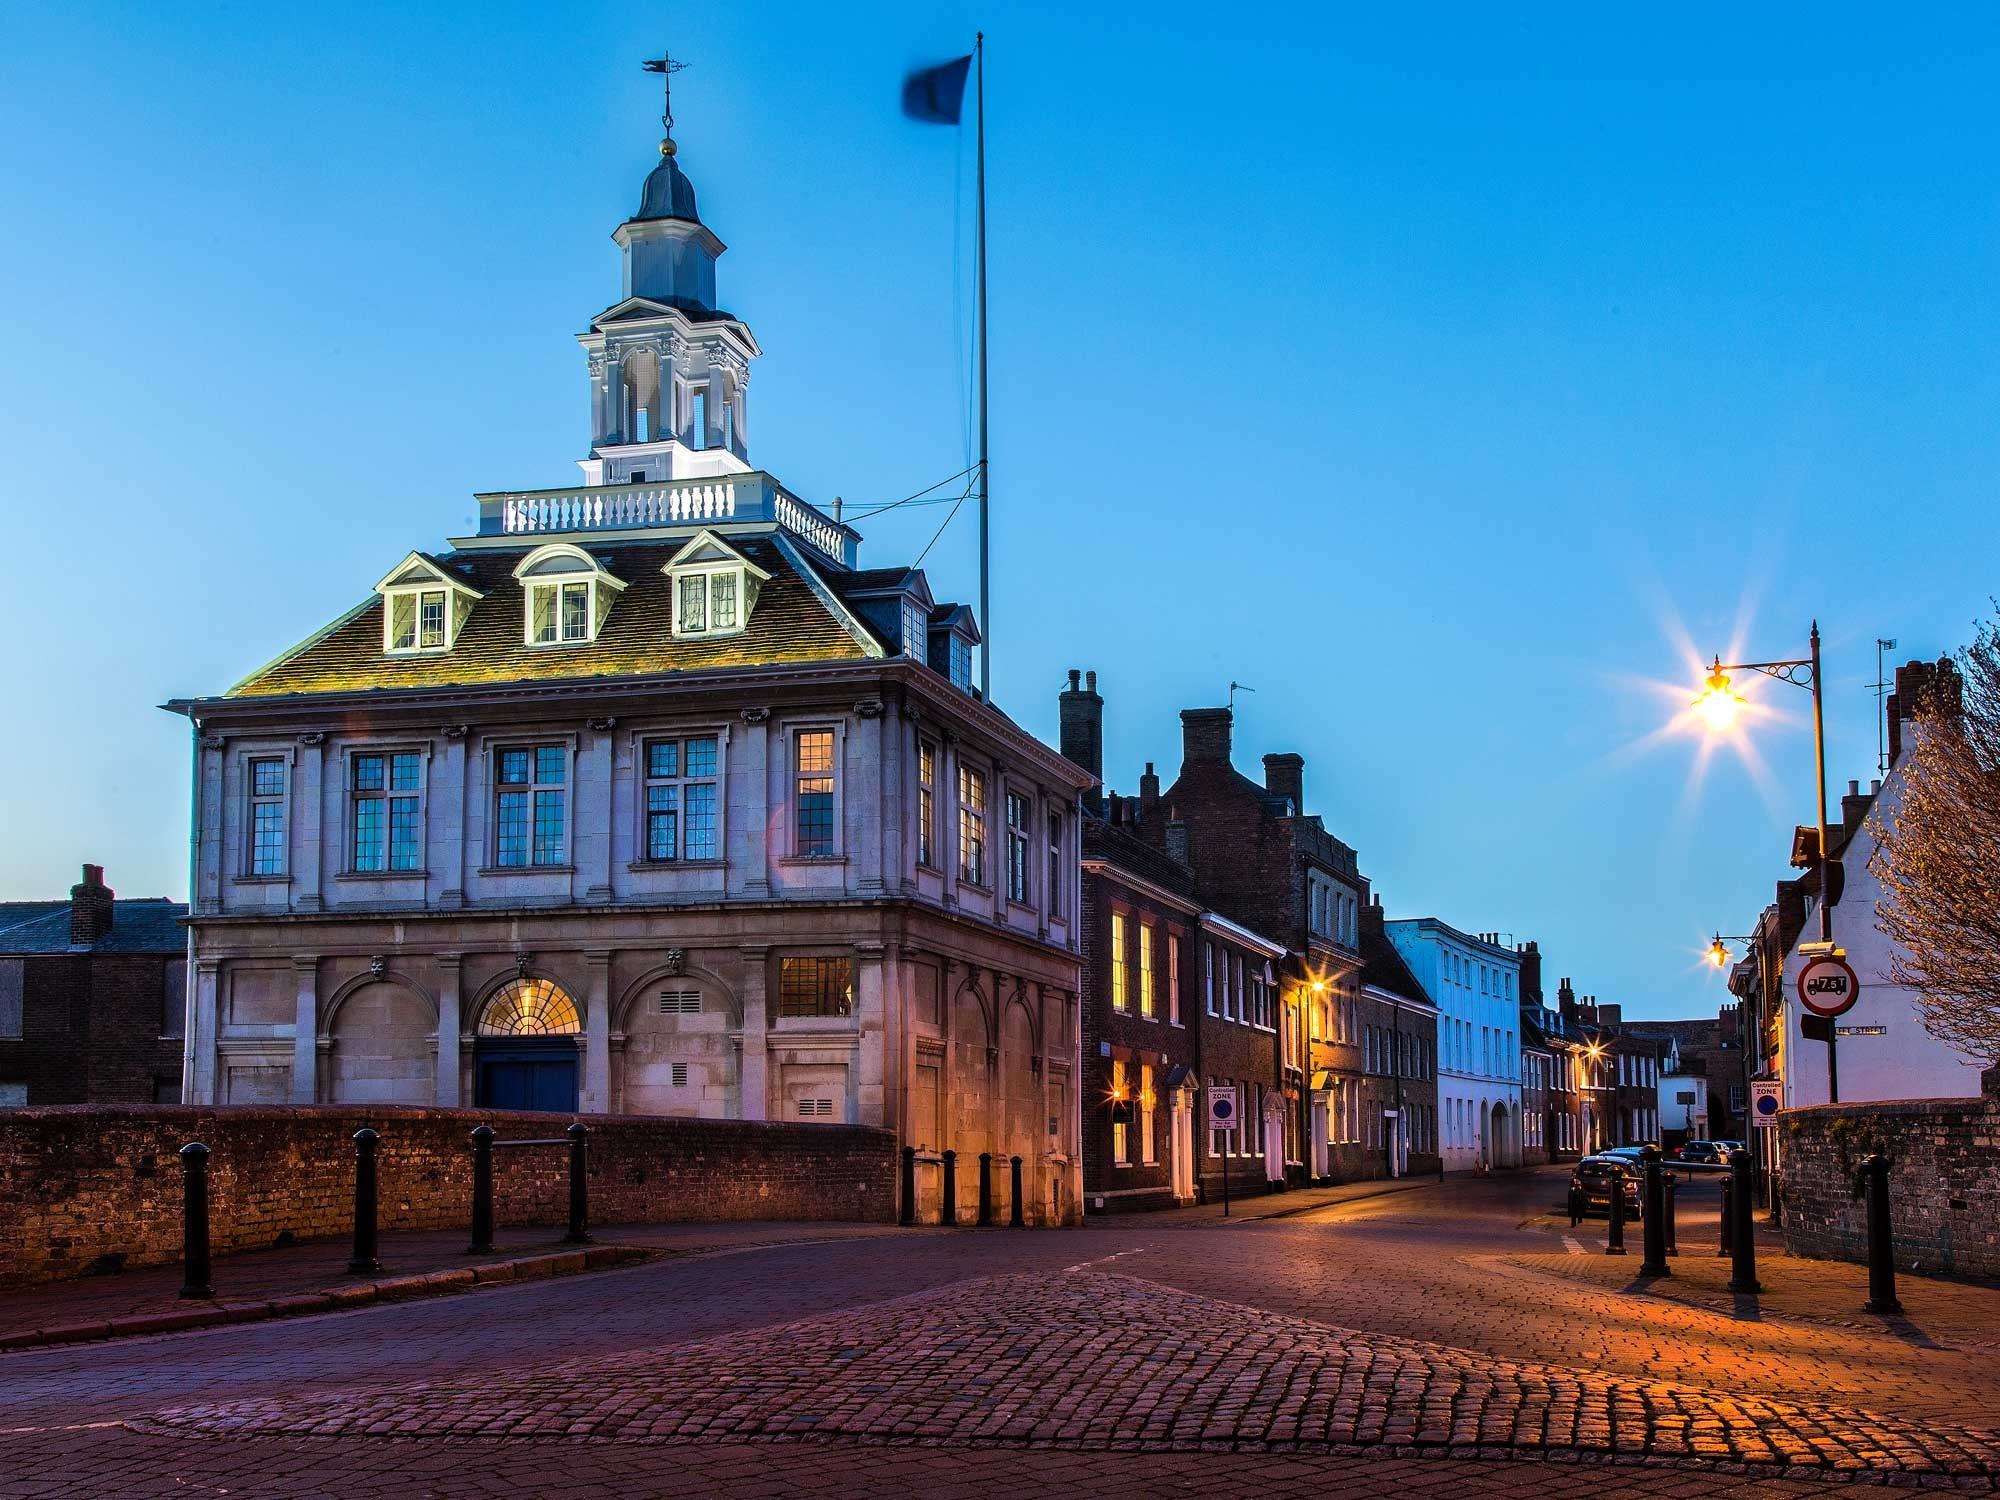 The Custom House in King's Lynn is one of Henry Bell's most famous buildings